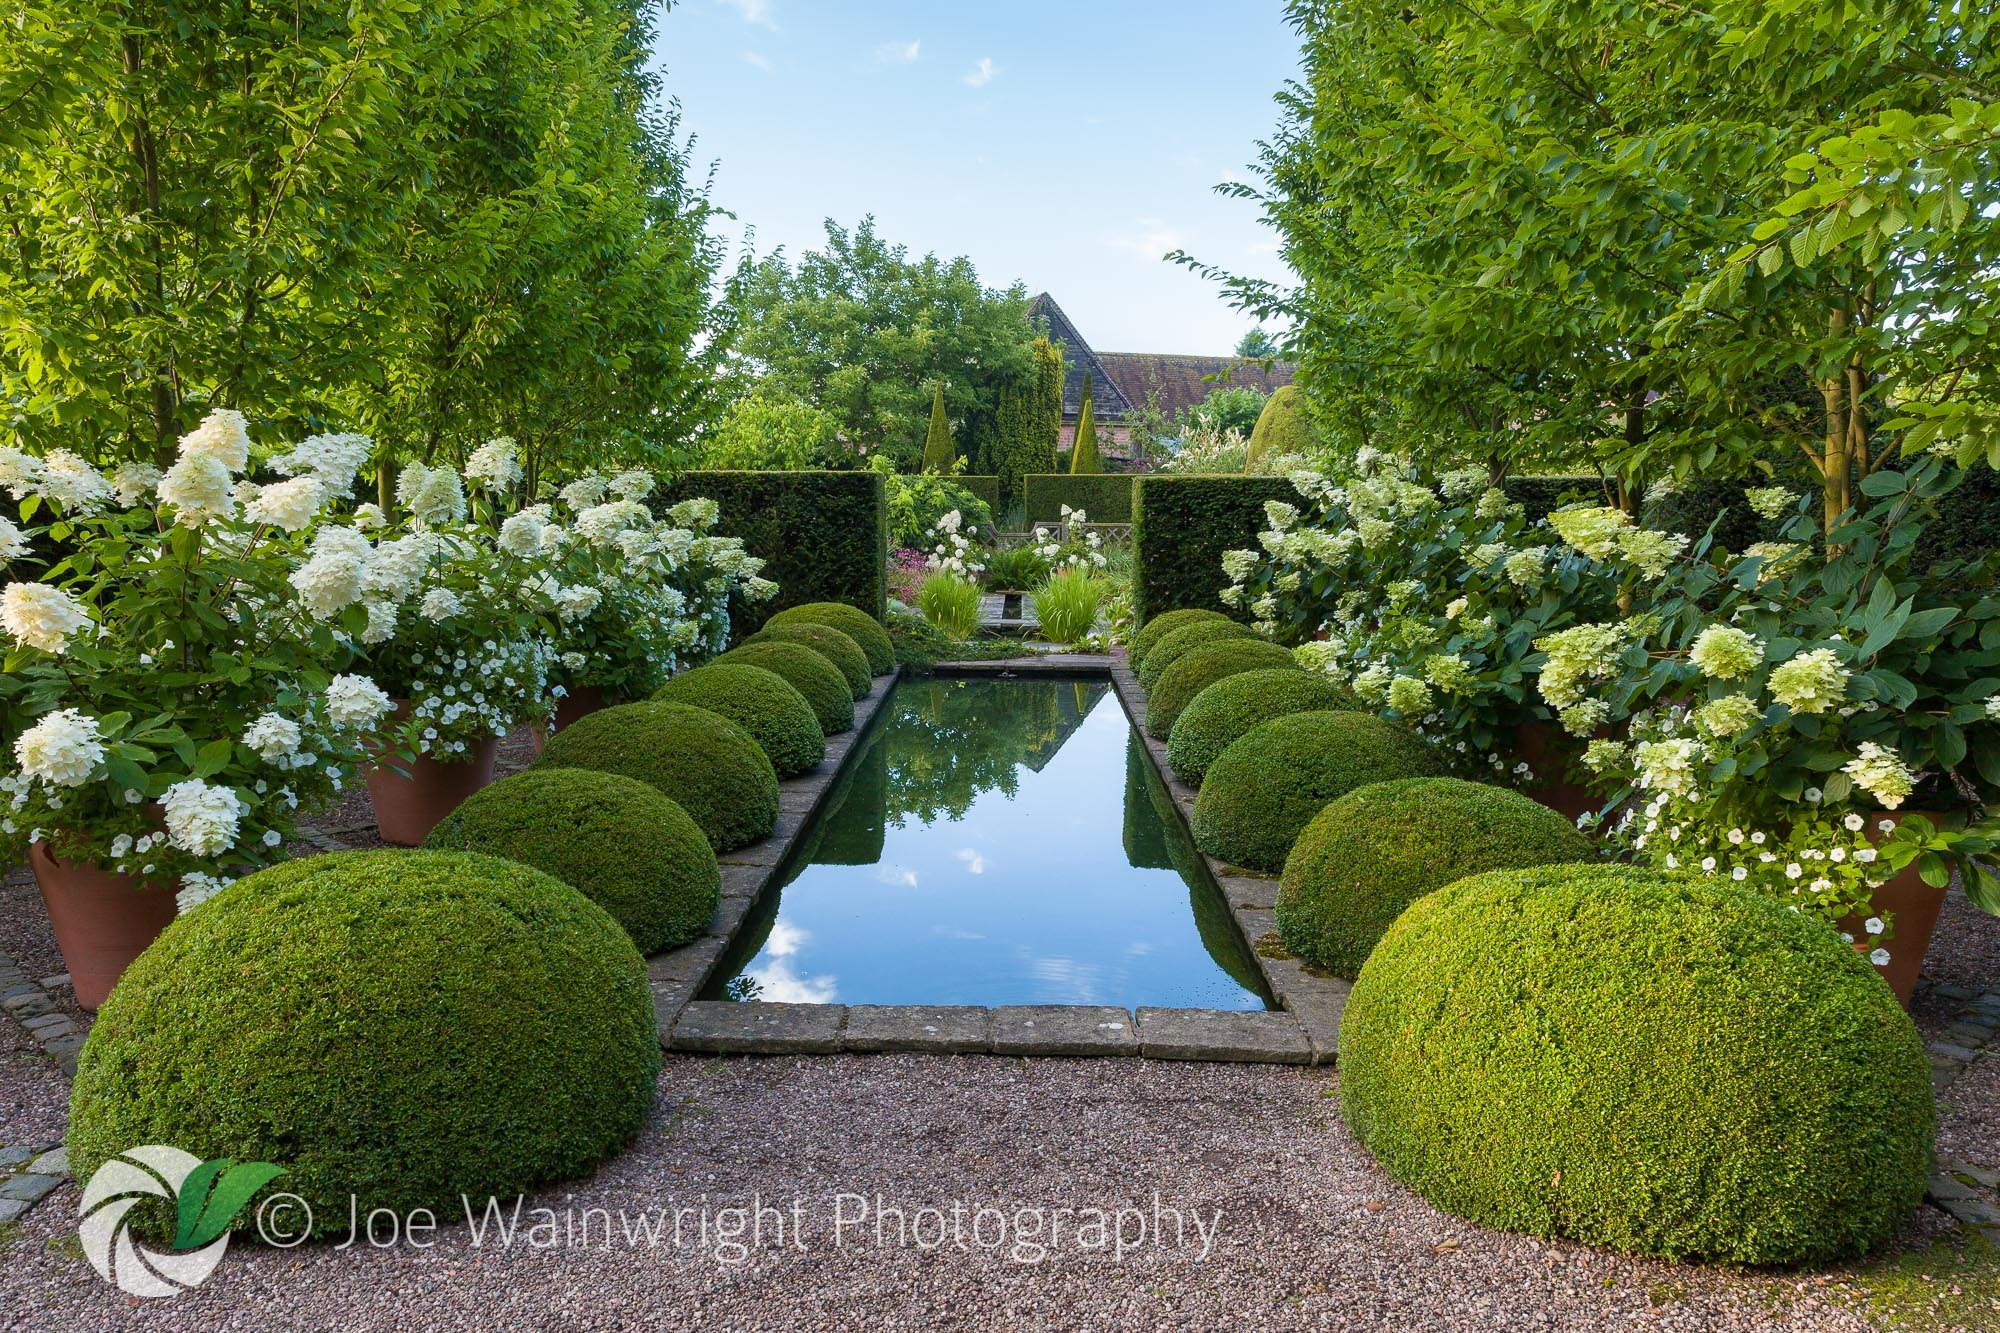 Wollerton_Old_Hall_Garden_-_The_Rill_Garden_and_Hydrangeas.jpg